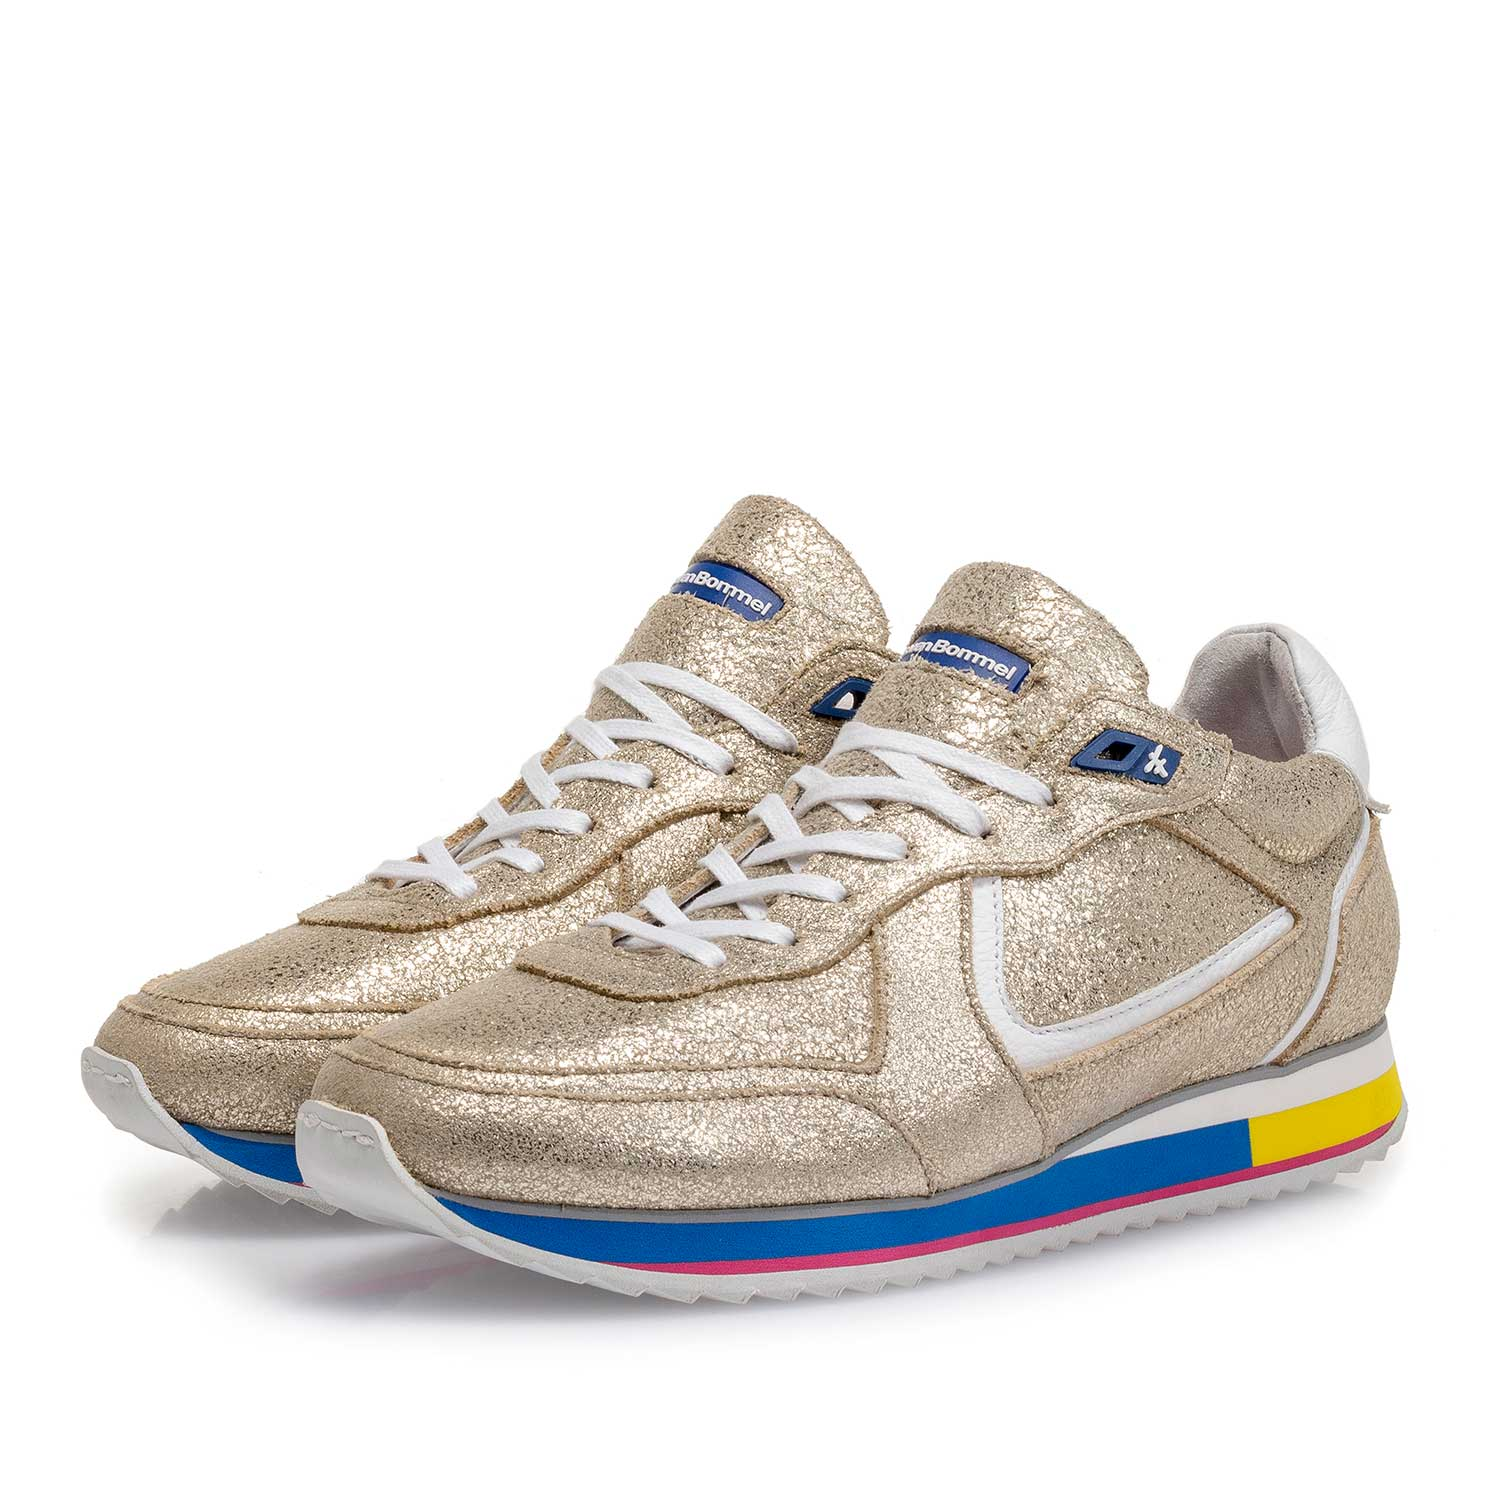 85260/13 - Golden metallic leather sneaker with craquelé effect